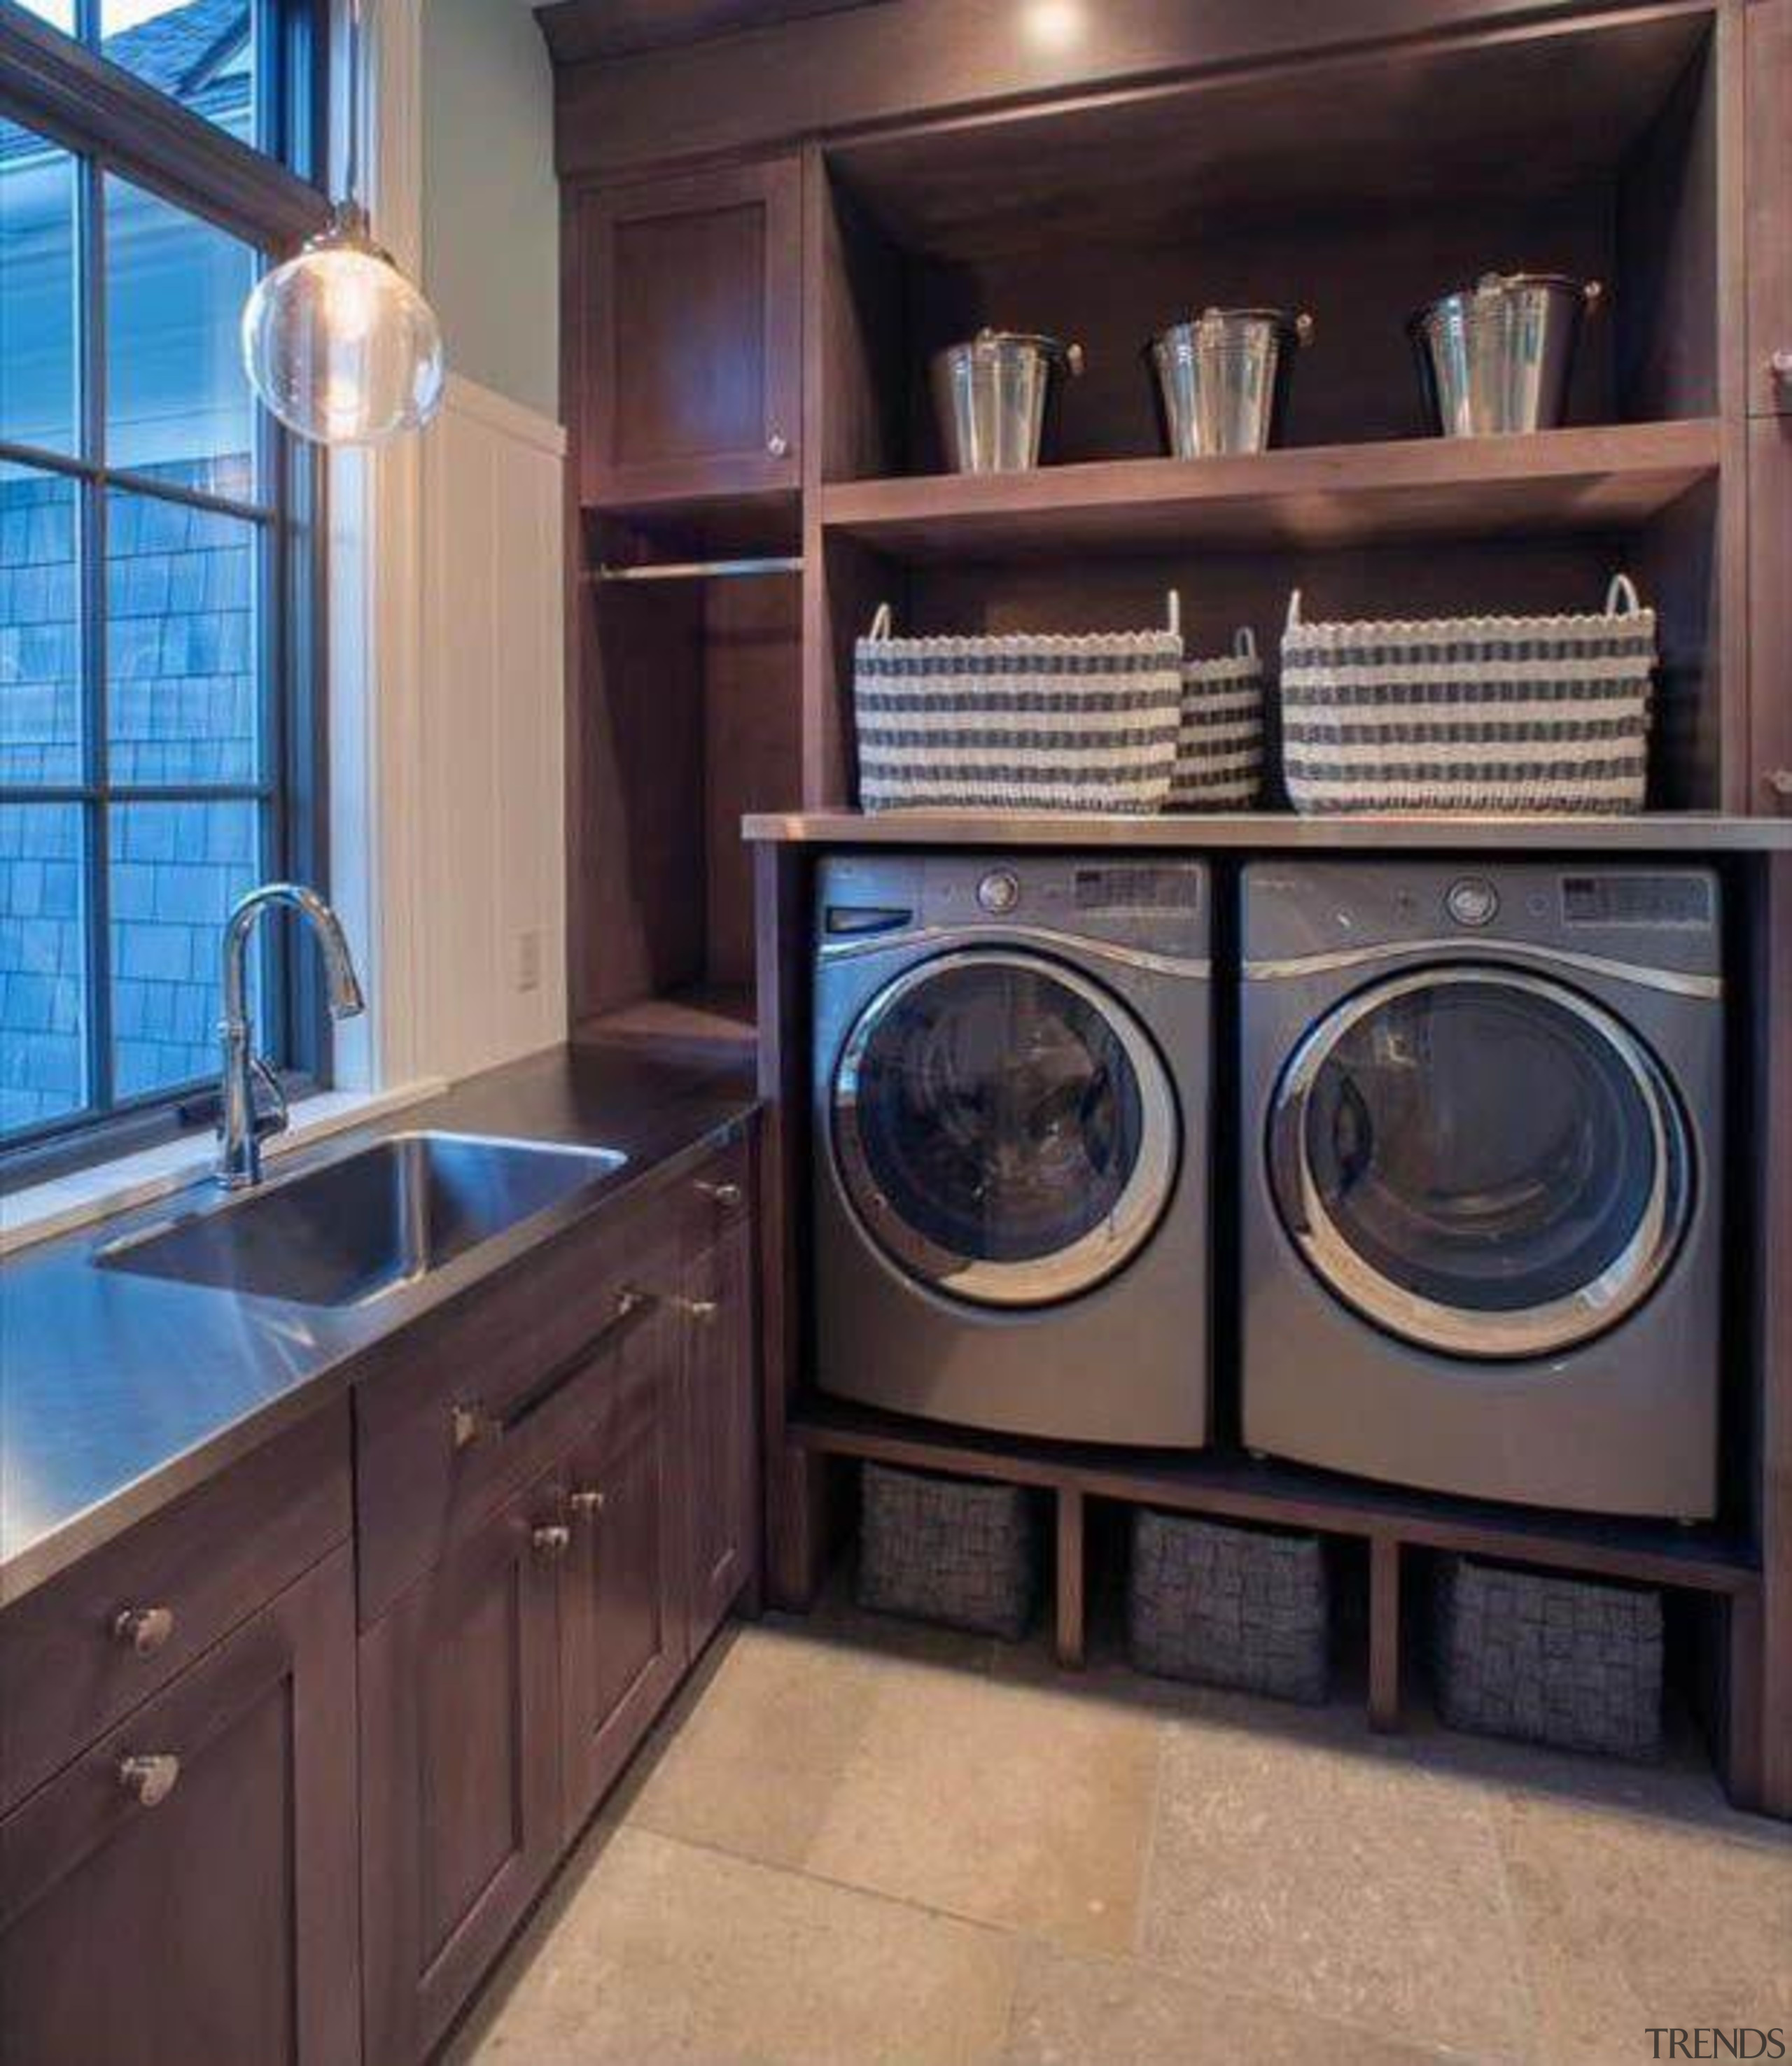 Utilitarian spaces such as laundry rooms and mudrooms cabinetry, countertop, home appliance, kitchen, laundry, laundry room, major appliance, room, washing machine, black